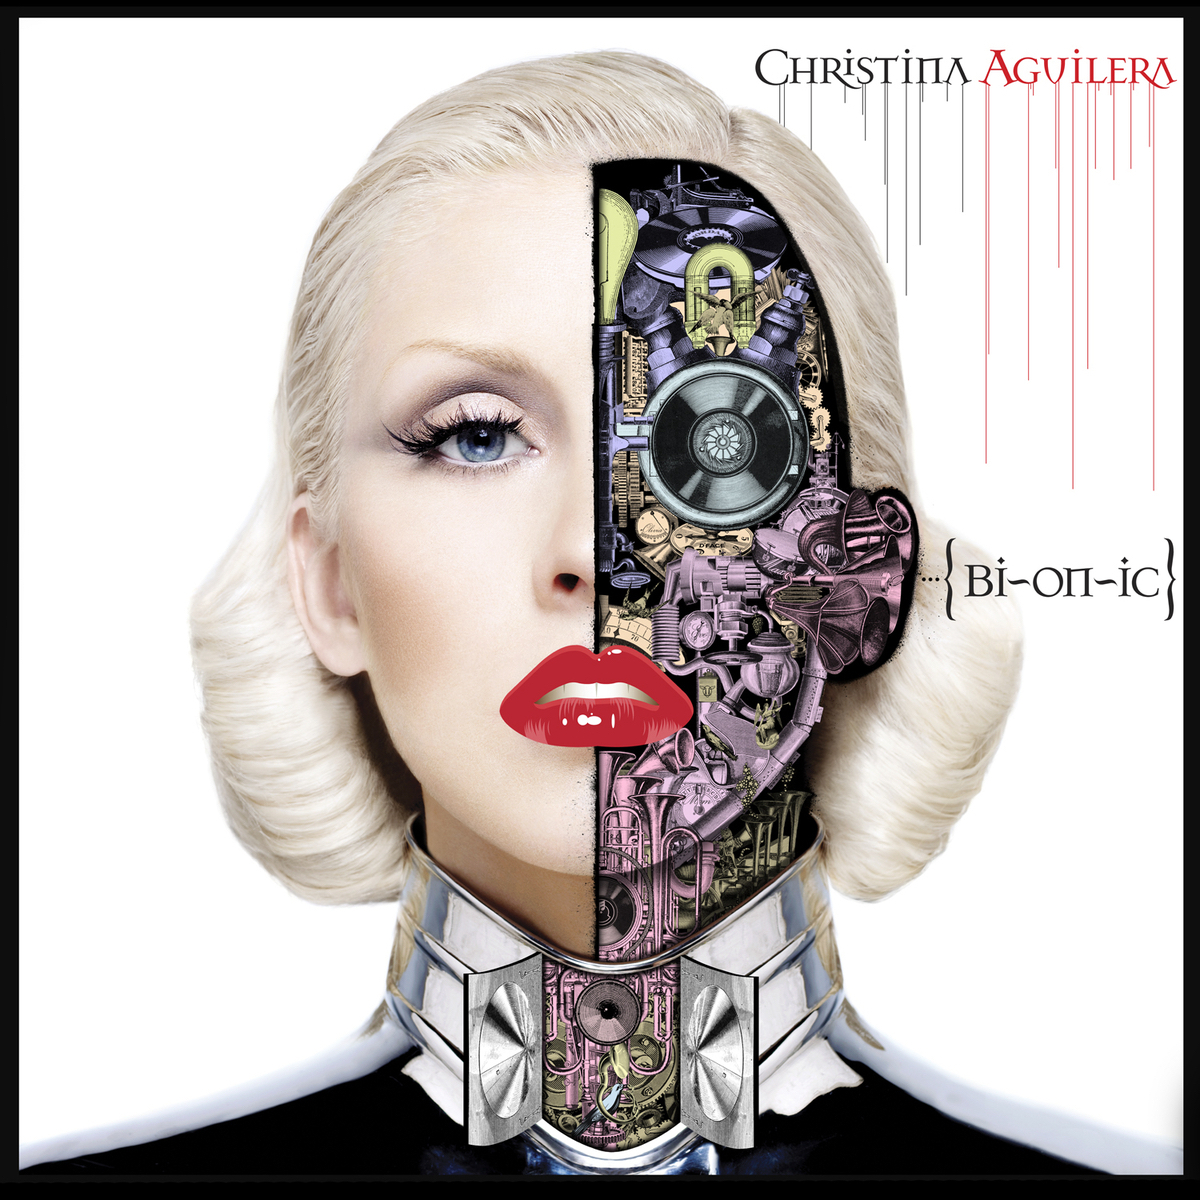 Christina Aguilera Album Cover.jpg